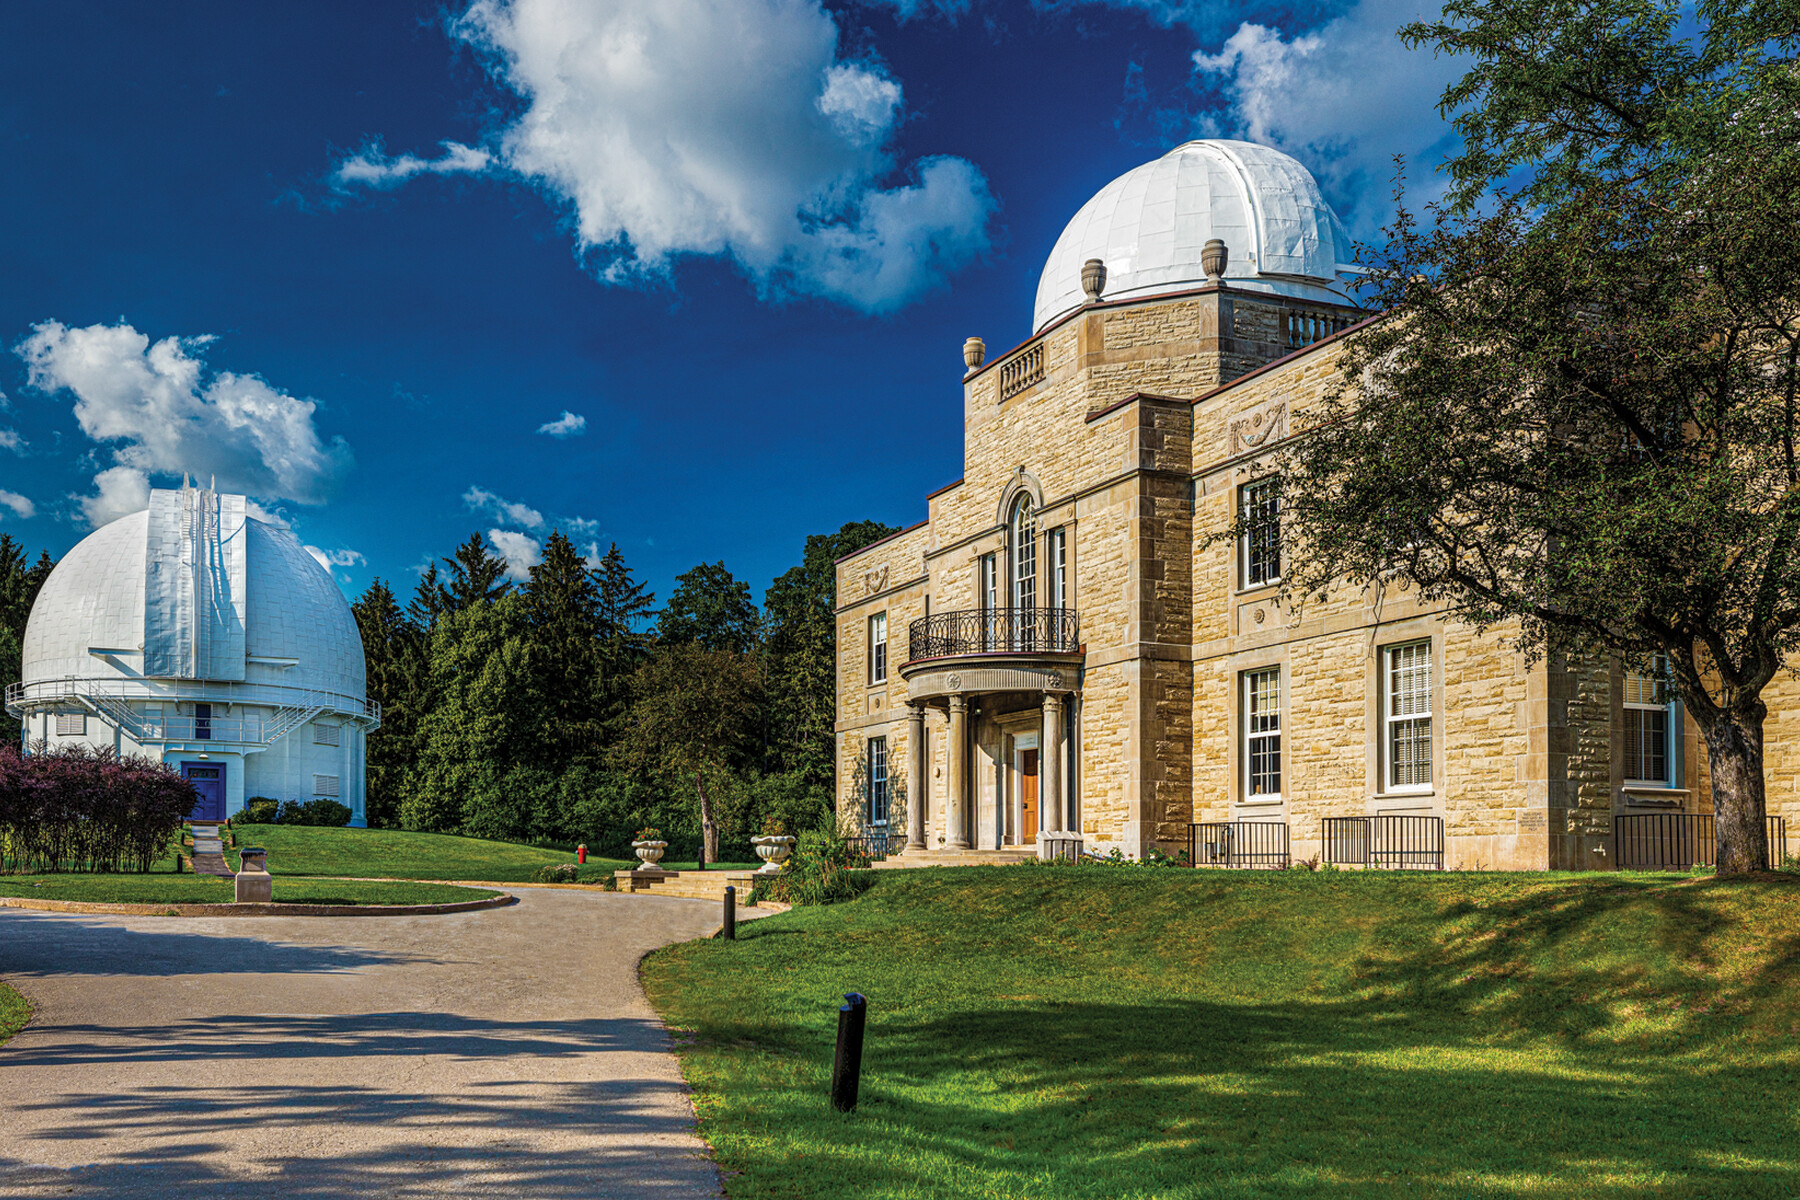 View of Observatory on left and Administration Building on right from down entry lane on a sunny day